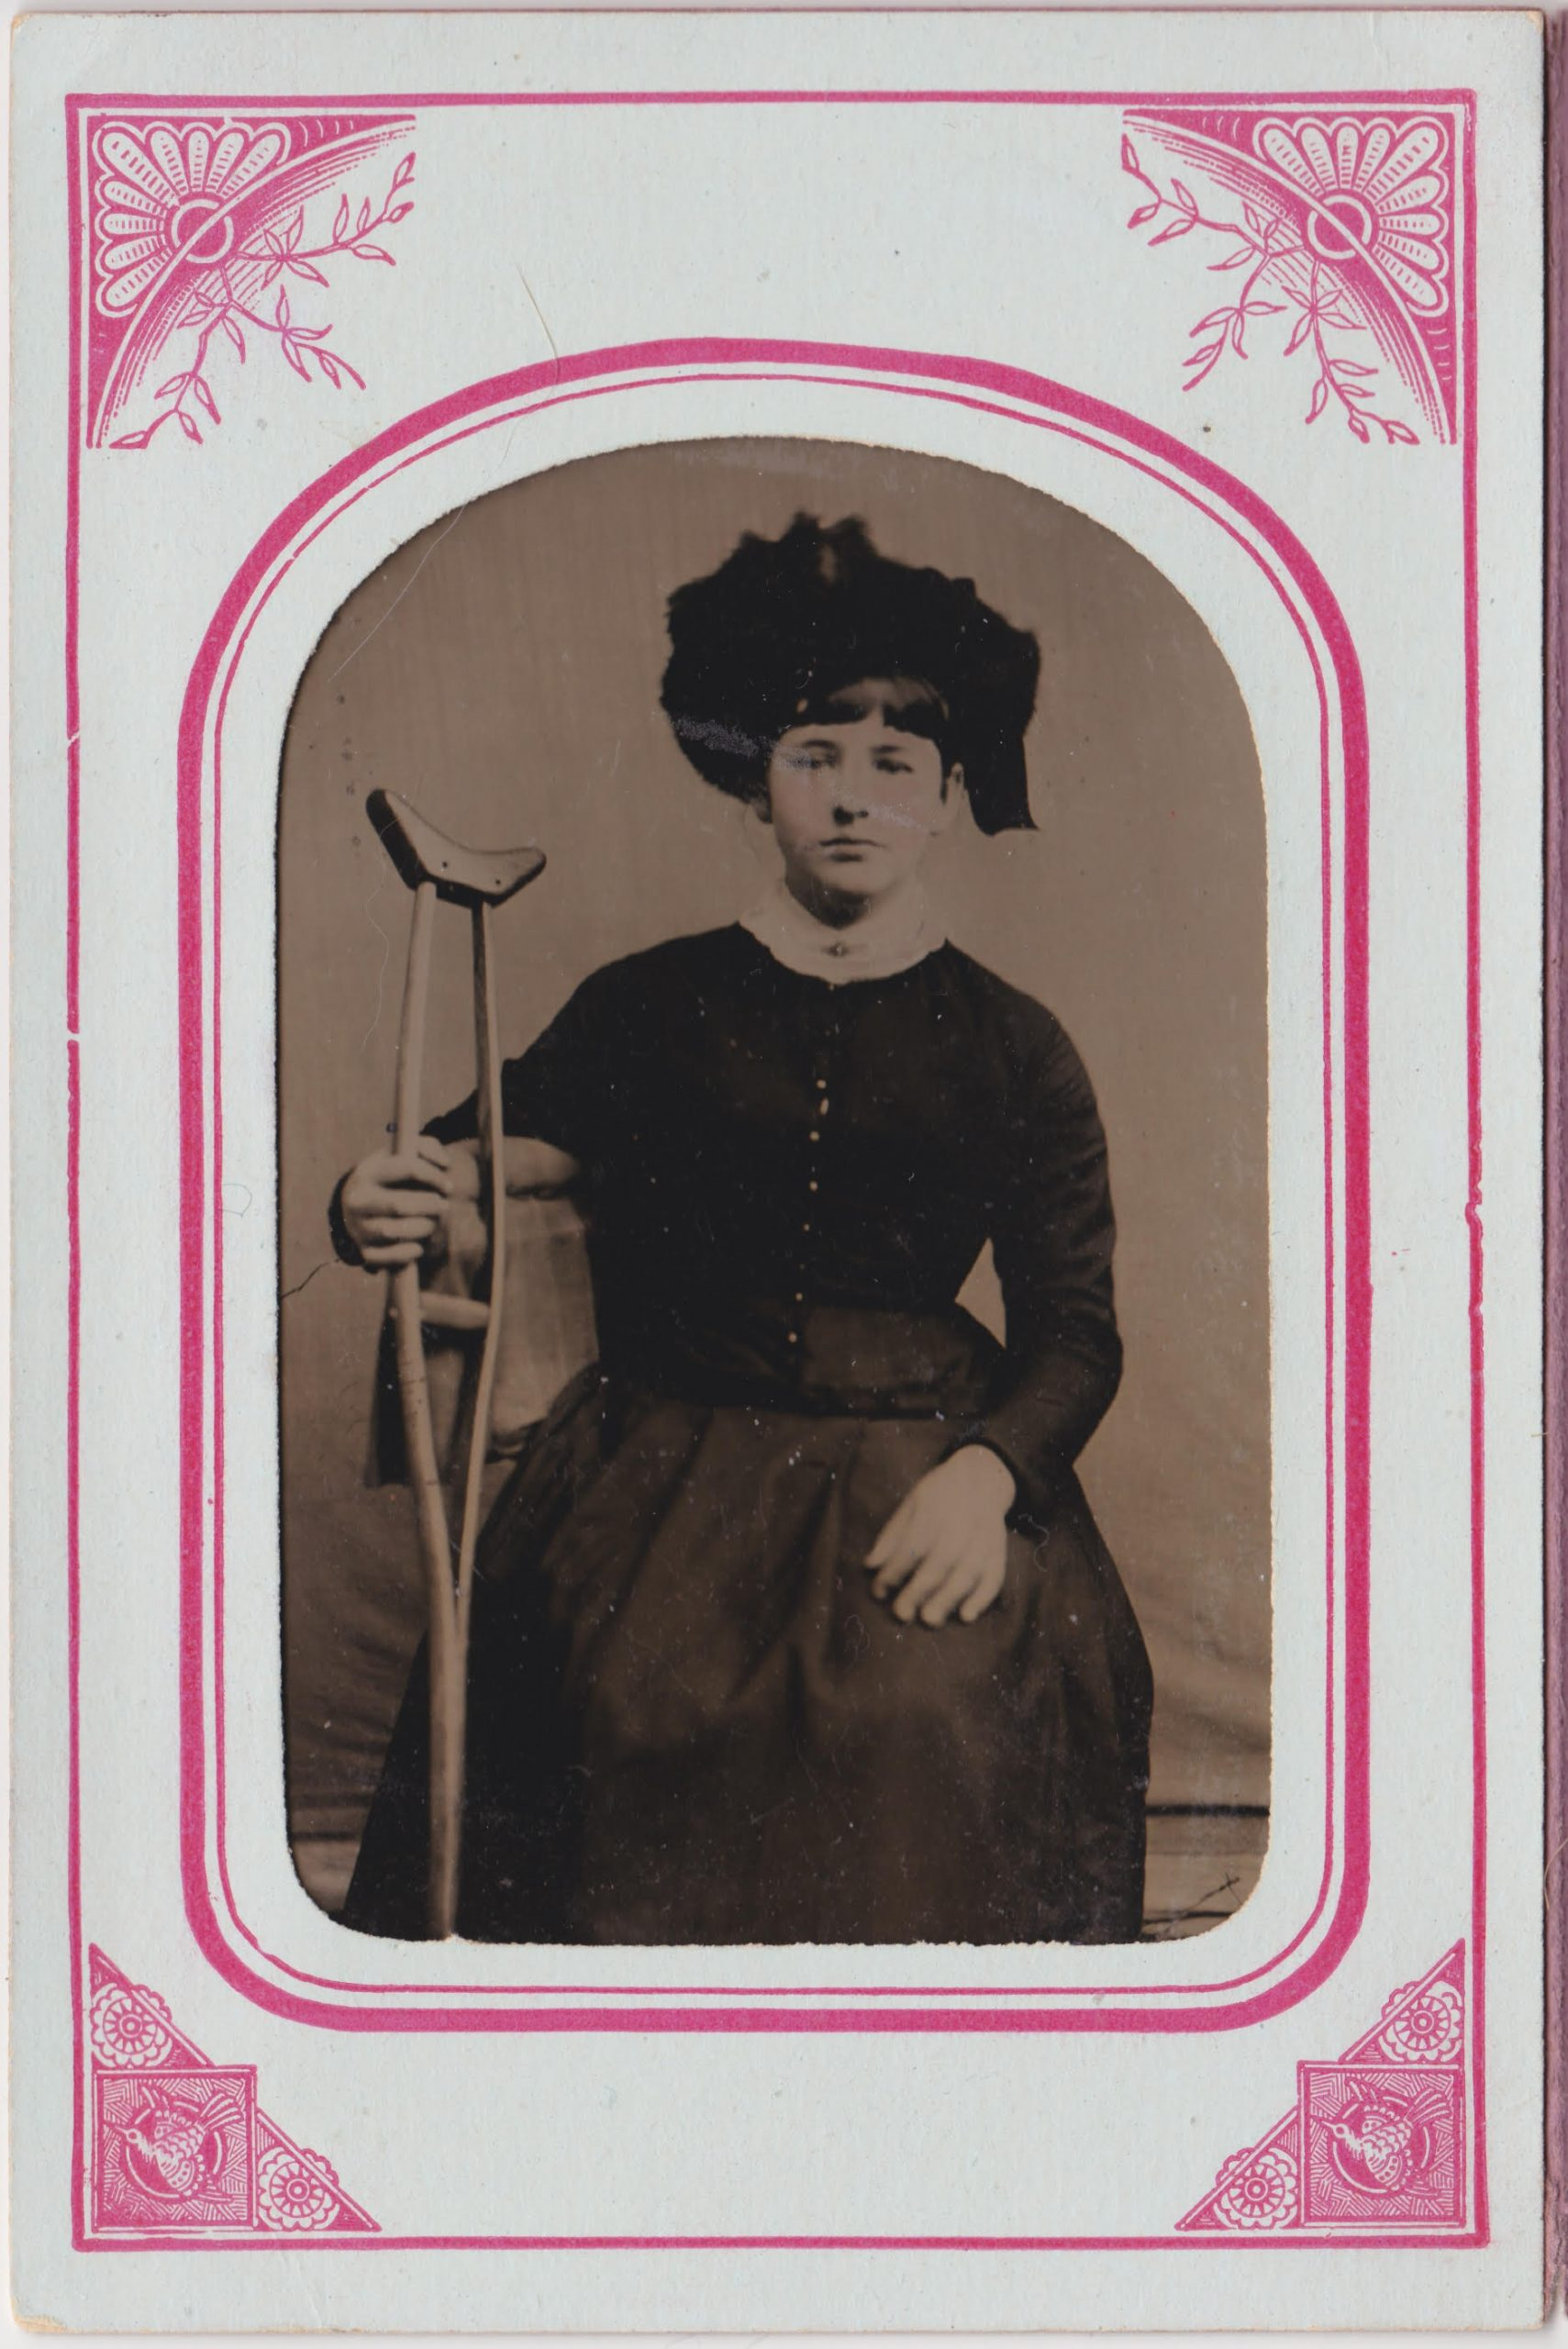 This is a black and white tintype of a woman sitting with a crutch in her right hand. Her left hand is resting on her knee. She is wearing a hat and gown with buttons (colored gold) down the bodice. The tintype is framed with white and red paper border. The border features stylized floral and bird designs in the corners.